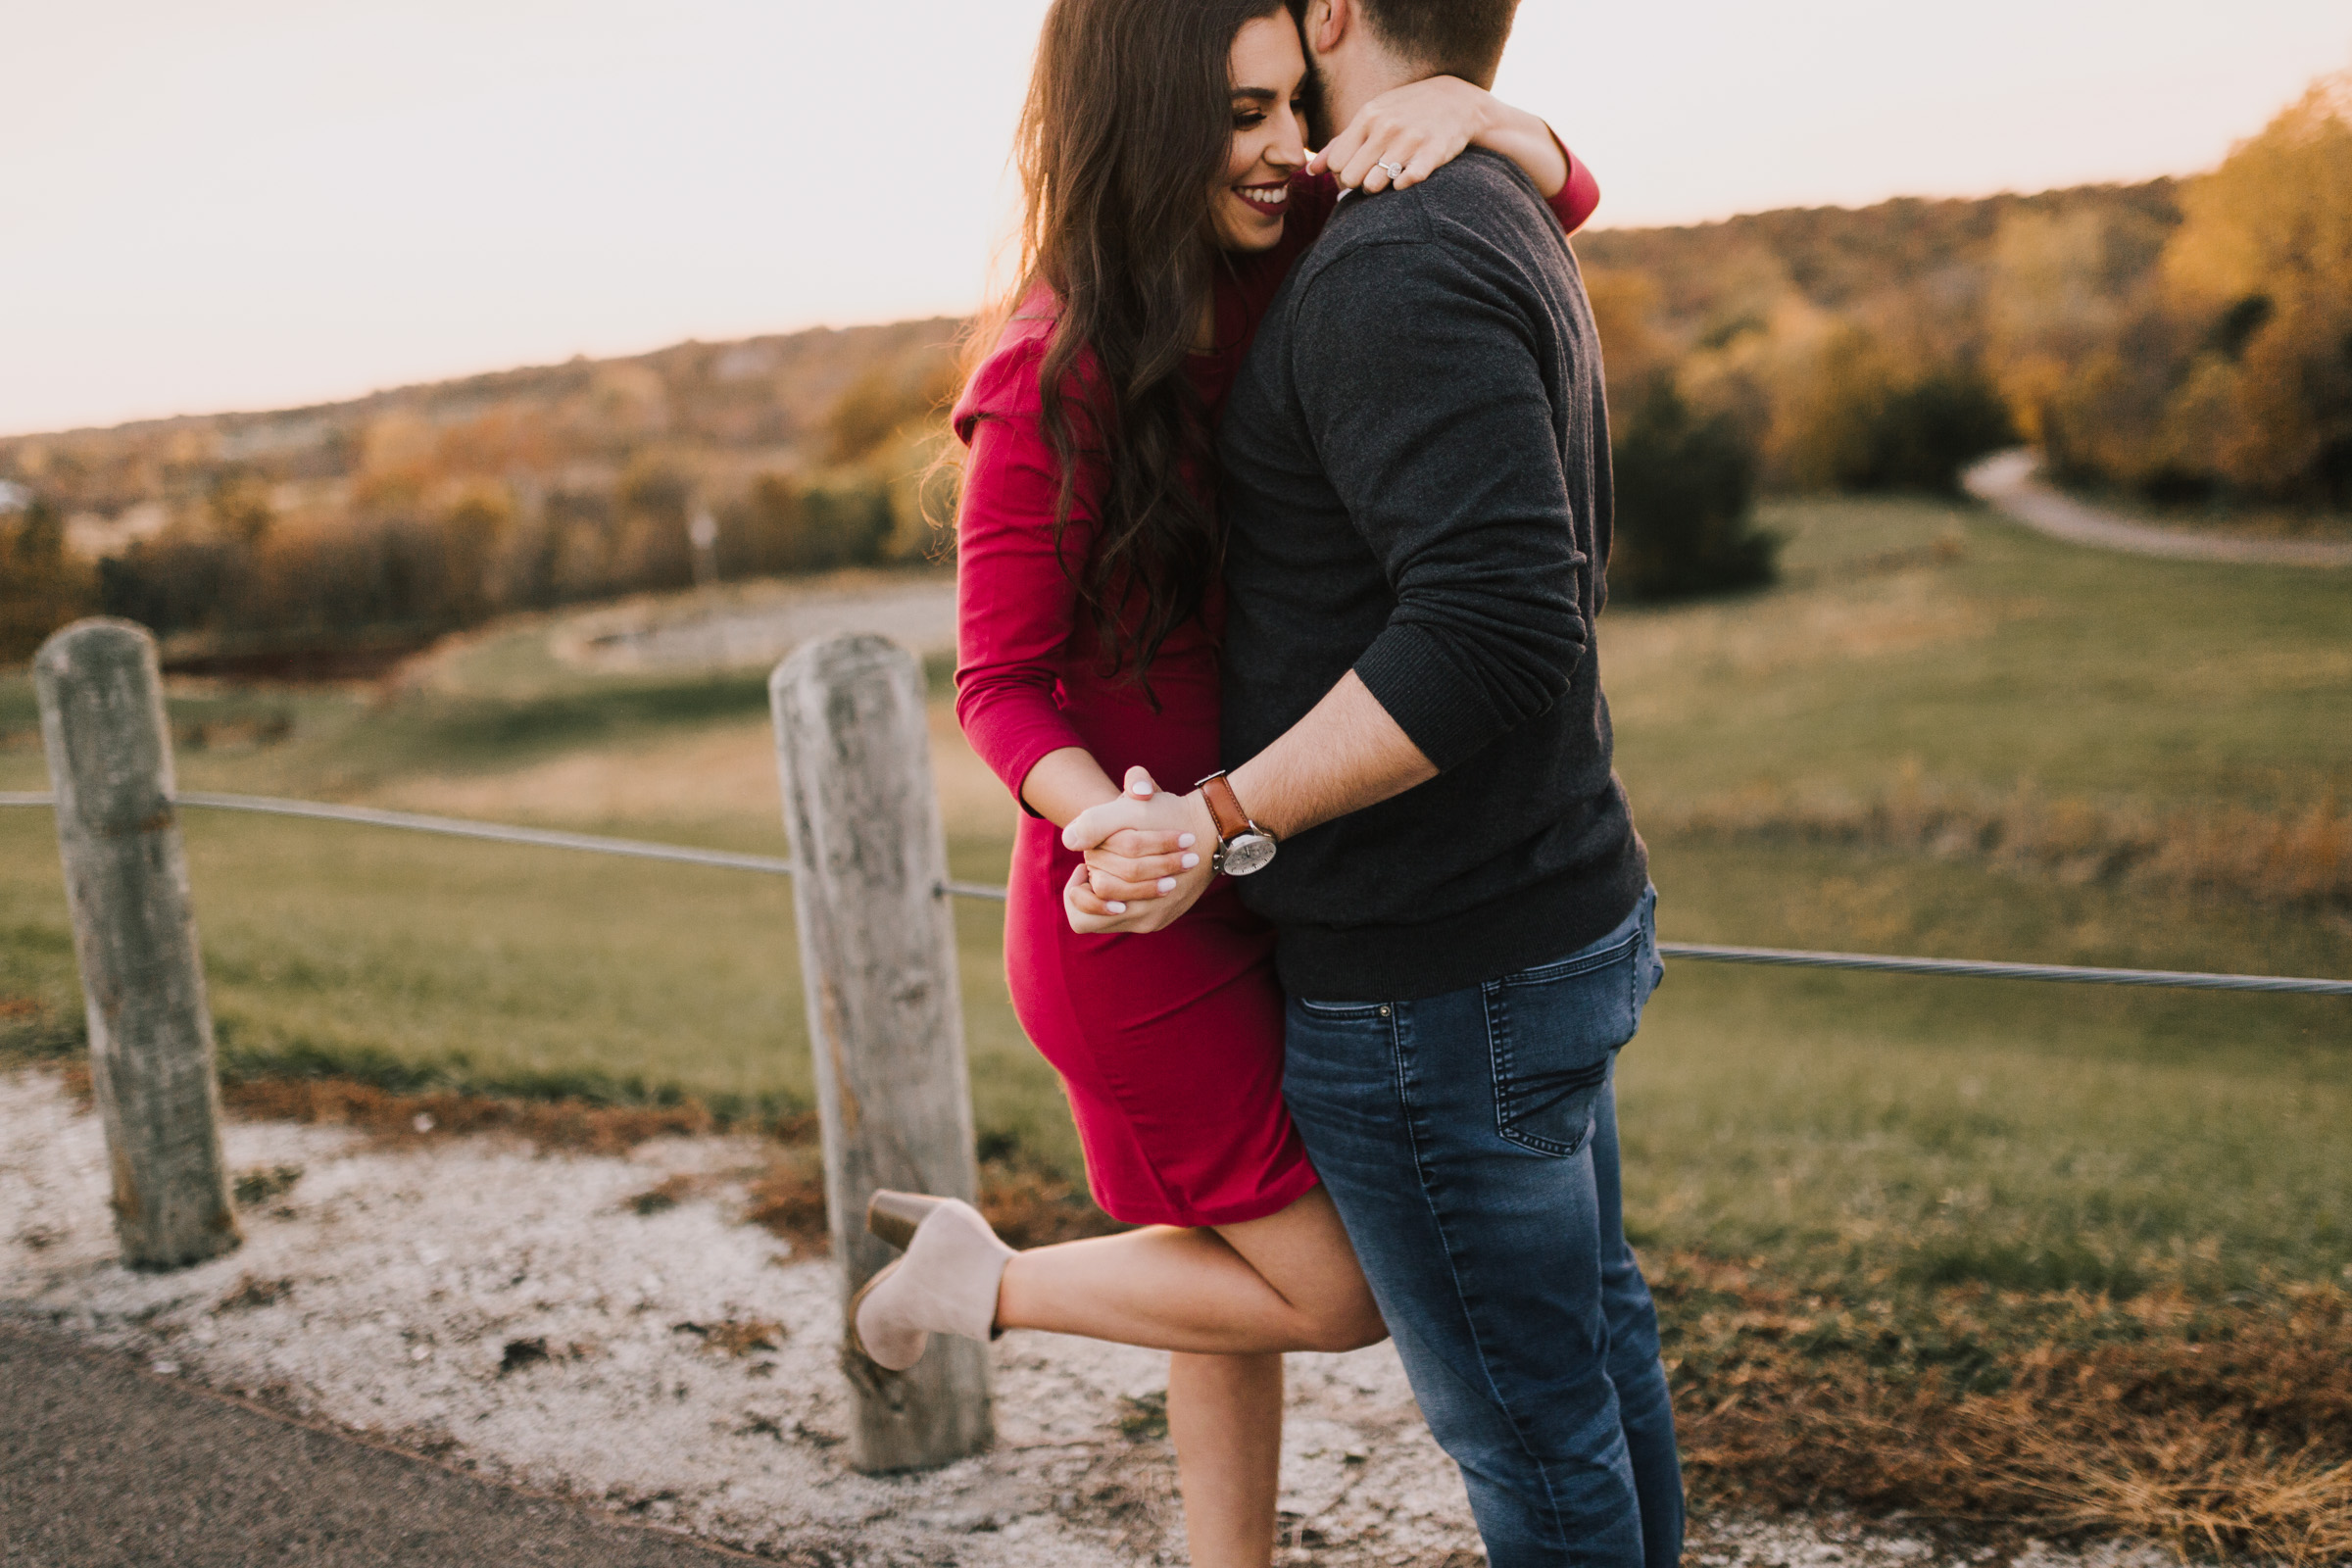 alyssa barletter photography shawnee mission park fall engagement photographer a girl her life blogger sunset photos-21.jpg